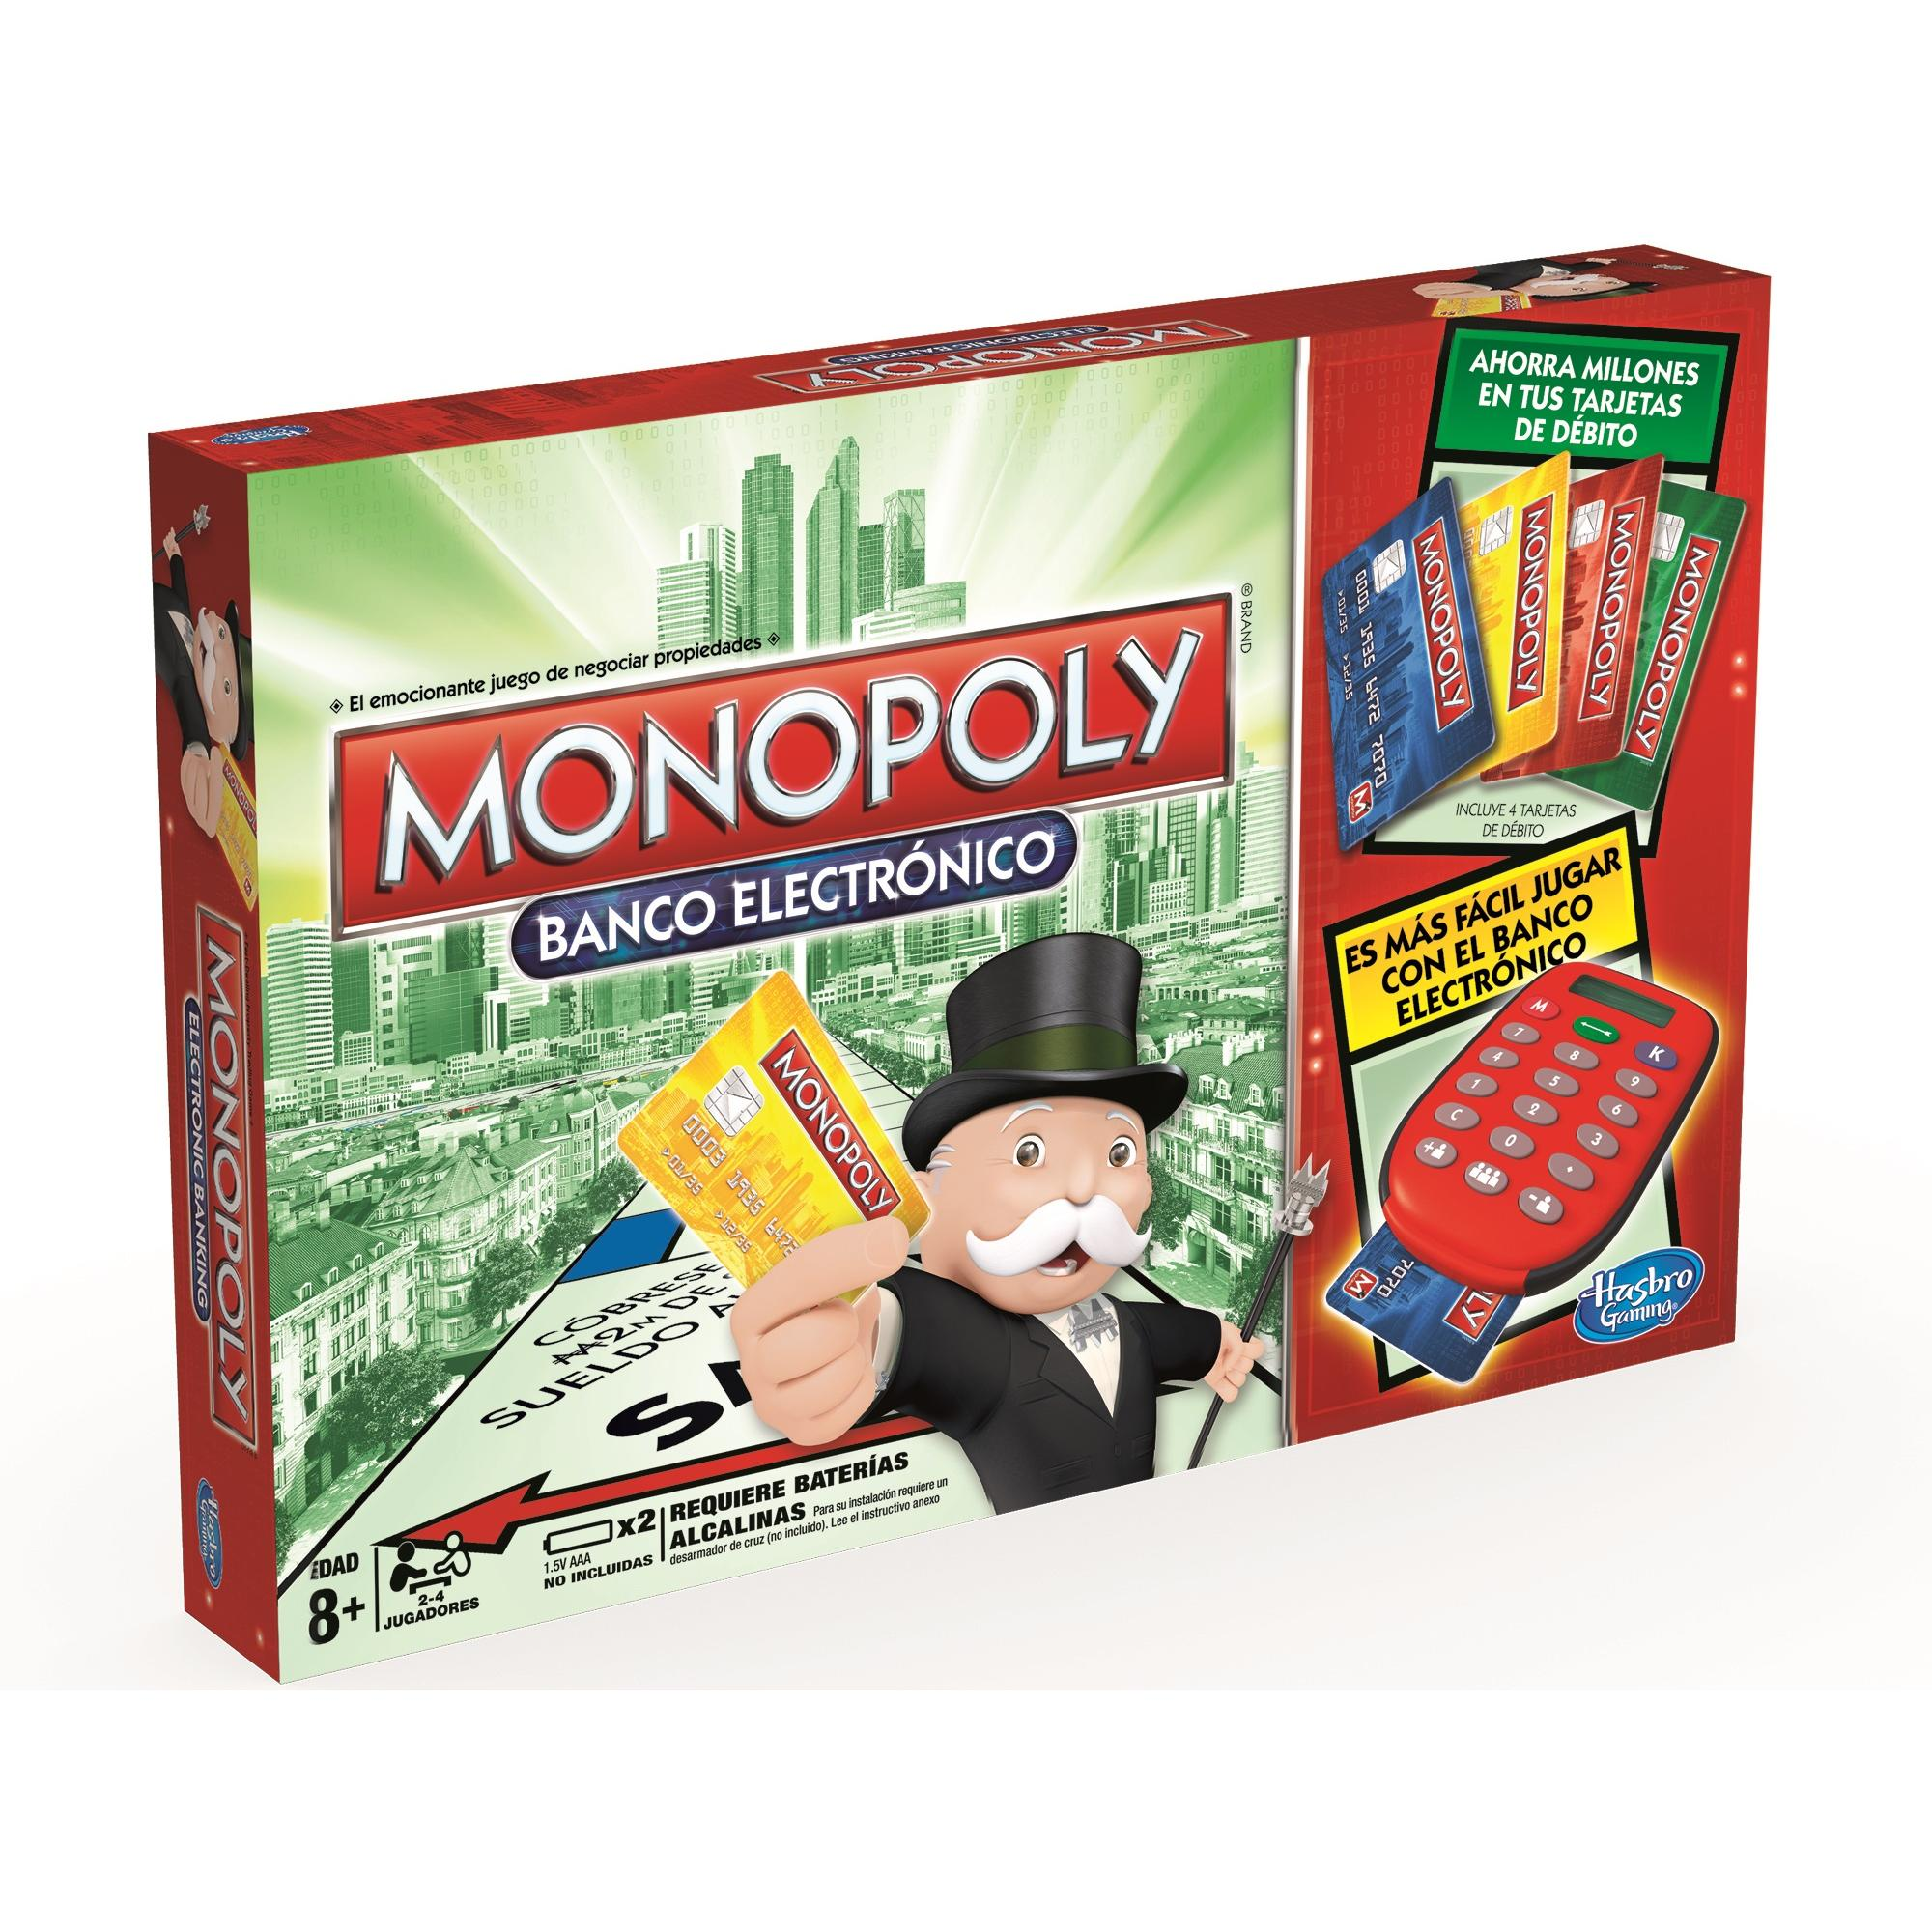 MONOPOLY ELECTORNIC BANKING B6677 - N93418